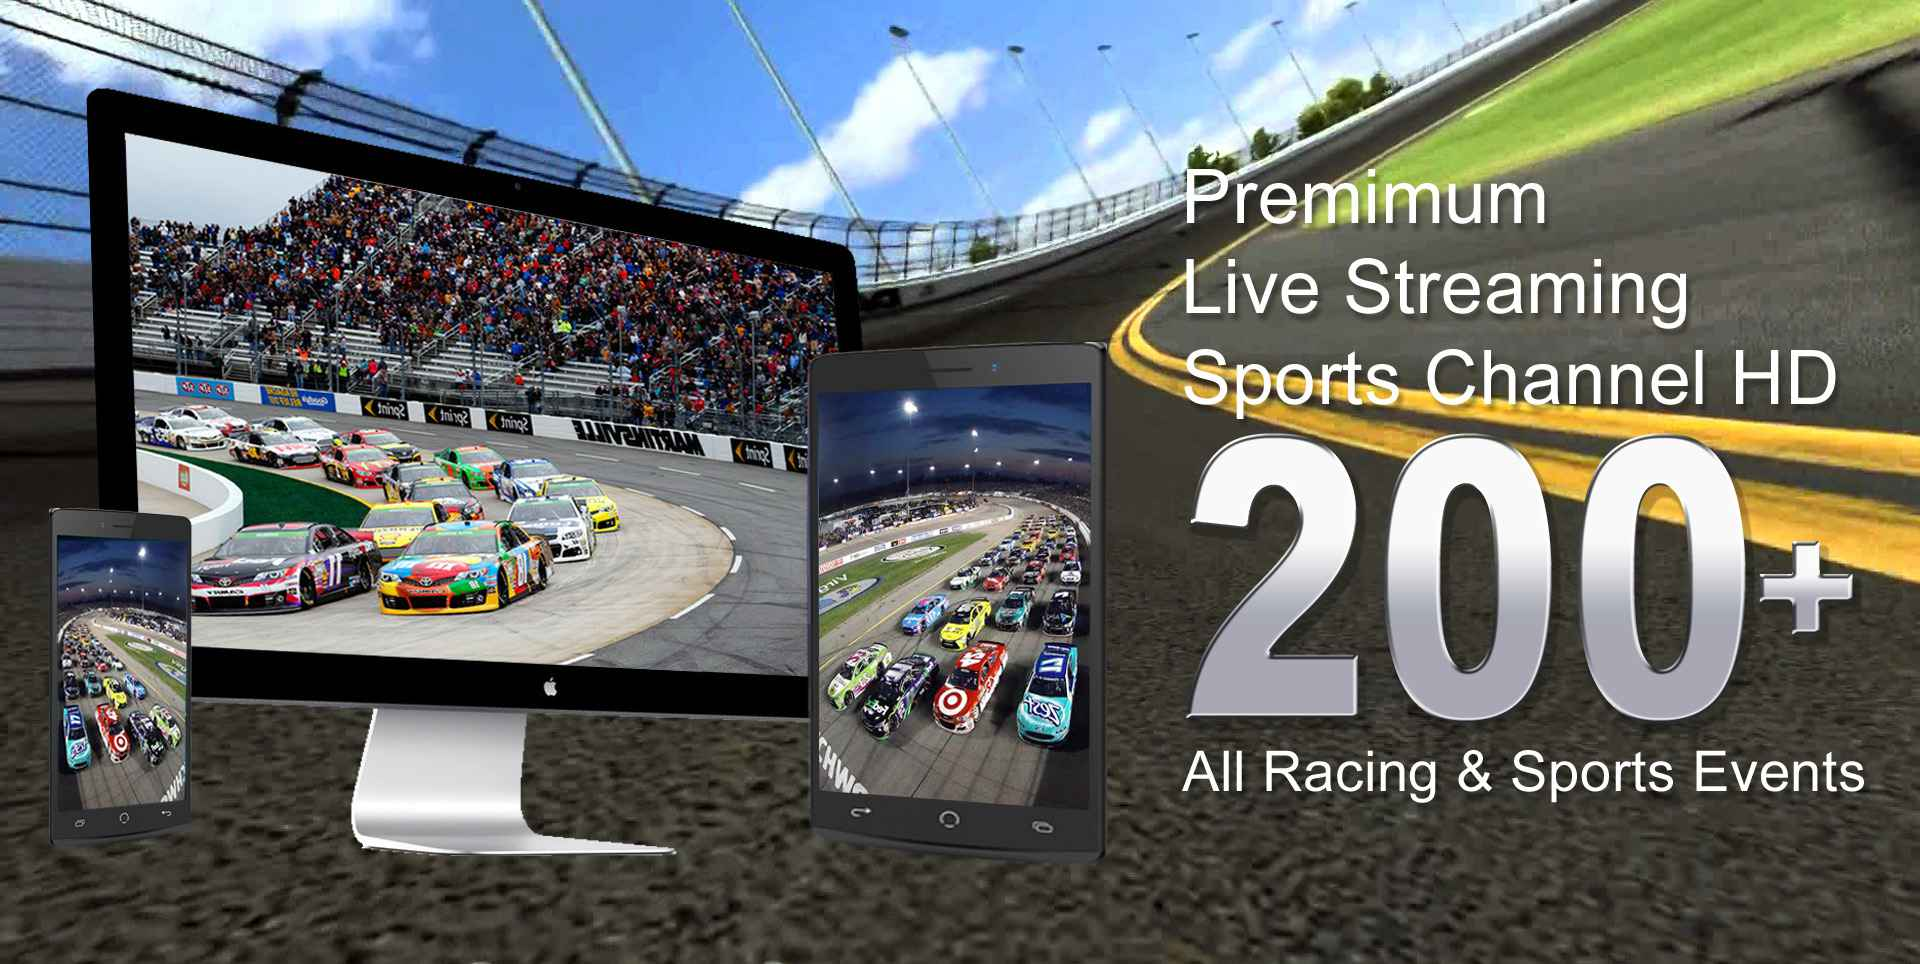 2015 NXS Kentucky 300 Live Streaming